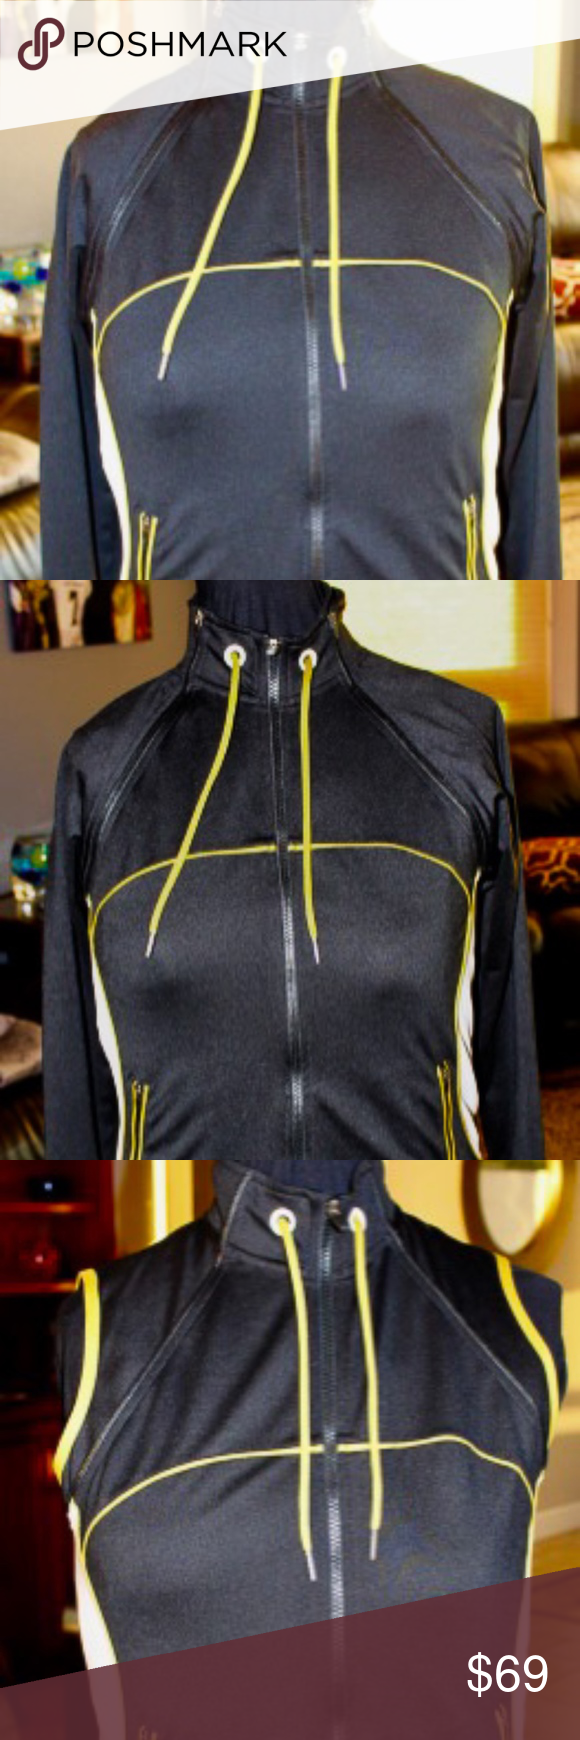 Soma Sport NEW-Never been worn jacket from Soma.  Black with white and yellow accent colors.  The sleeves zip off.  This is a very nice jacket.  Size X-Small. Sporty yet stylish. Soma Sport Jackets & Coats